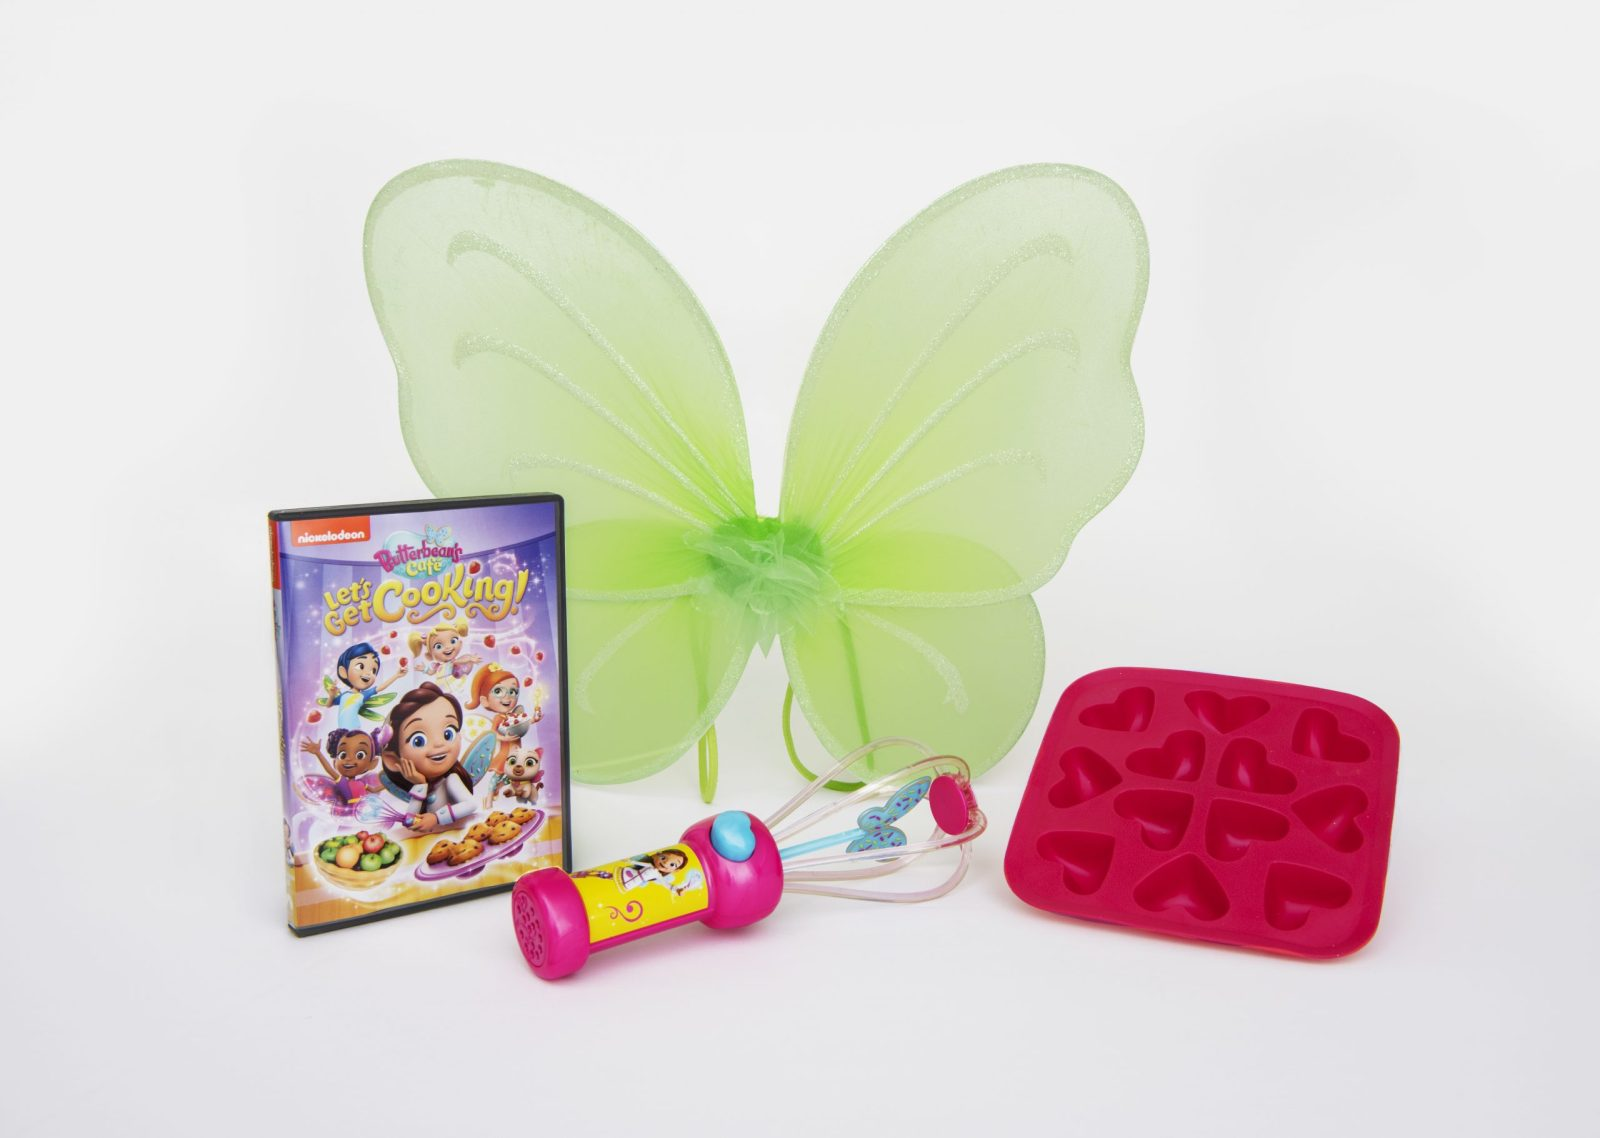 Step into the kitchen and get cooking with the fairy best team! Butterbean's Café: Let's Get Cooking is available now on DVD! Enter the giveaway for a fairy treat kit! #giveaway #paramount #butterbeanscafe